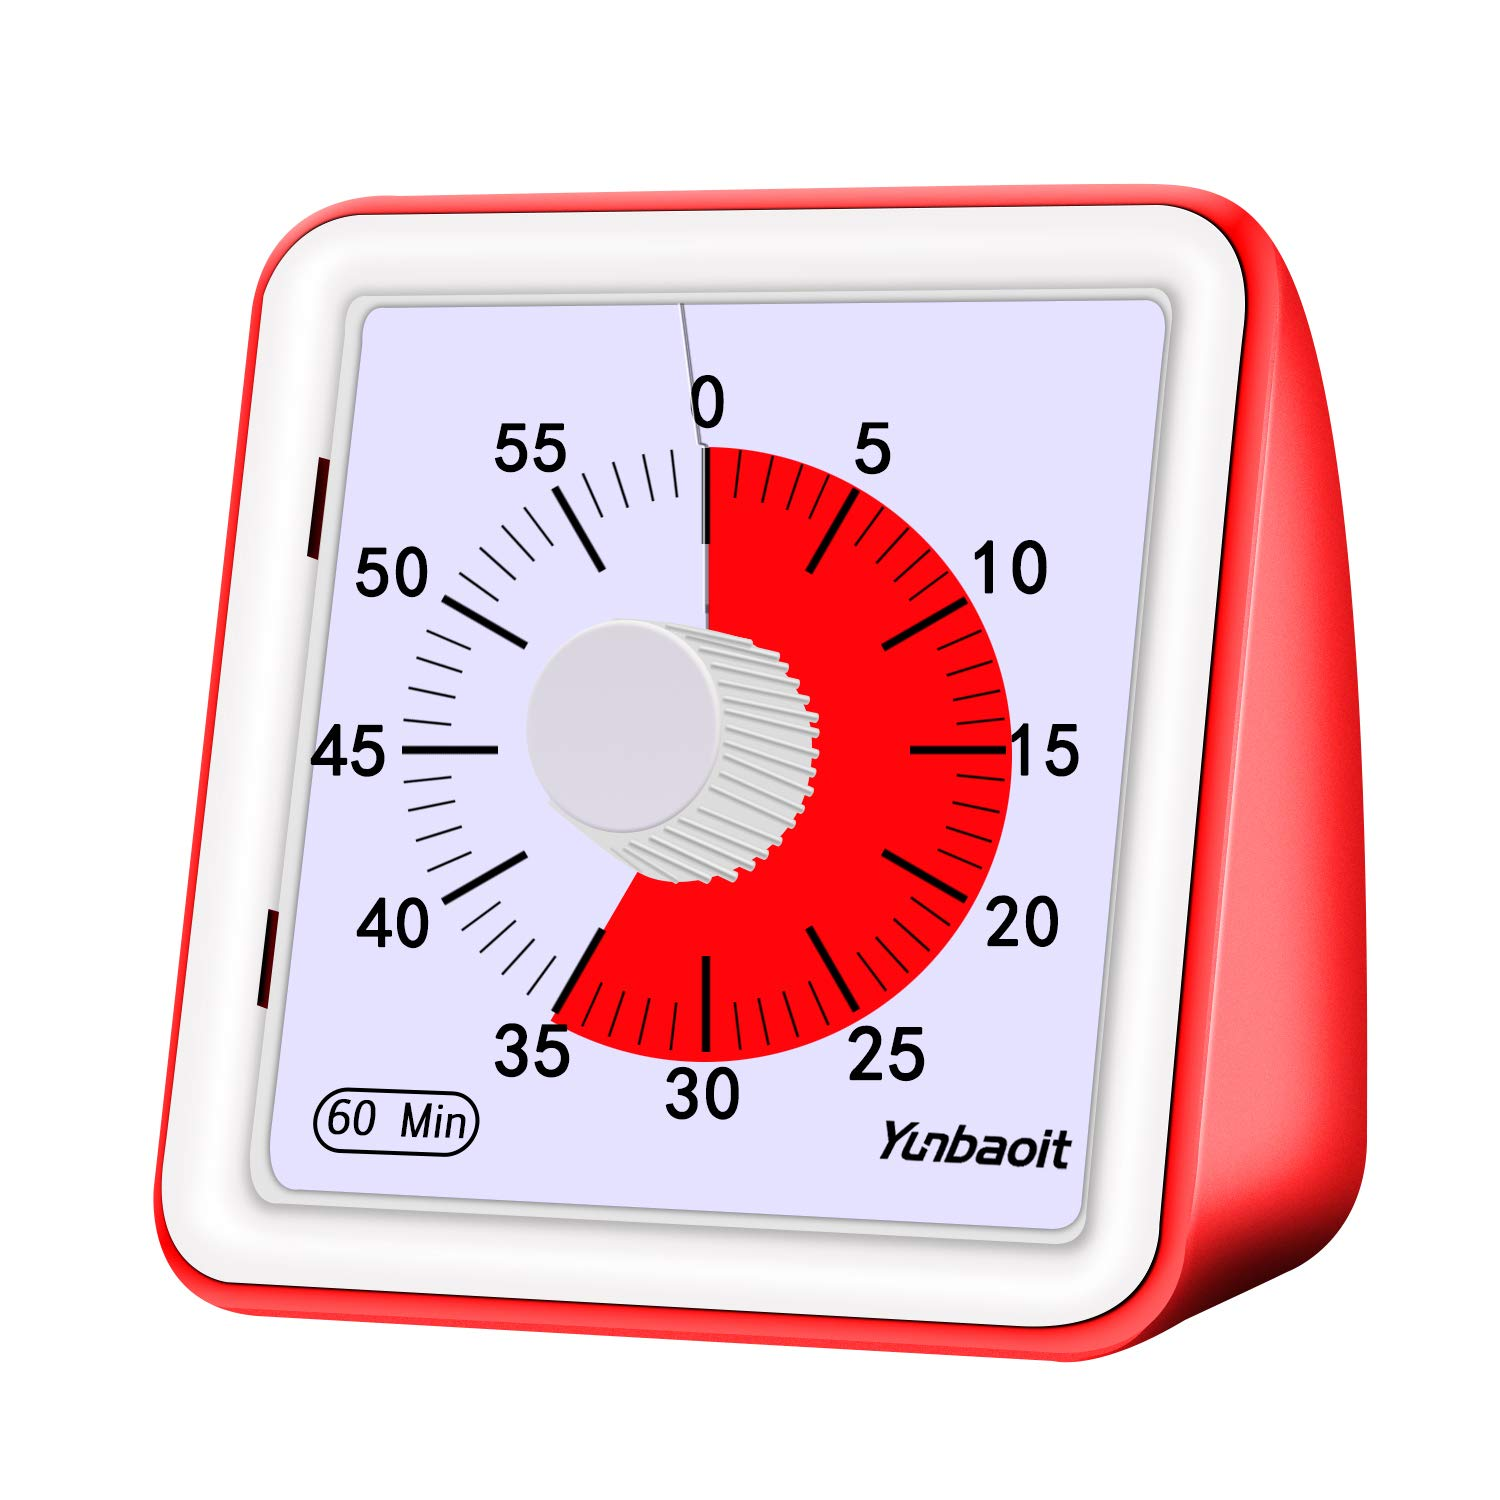 Yunbaoit 60-minute Visual Analog Timer,Countdown Clock,No Loud Ticking,Time Management Tool for Kids and Adults, Cooking, Red by Yunbaoit